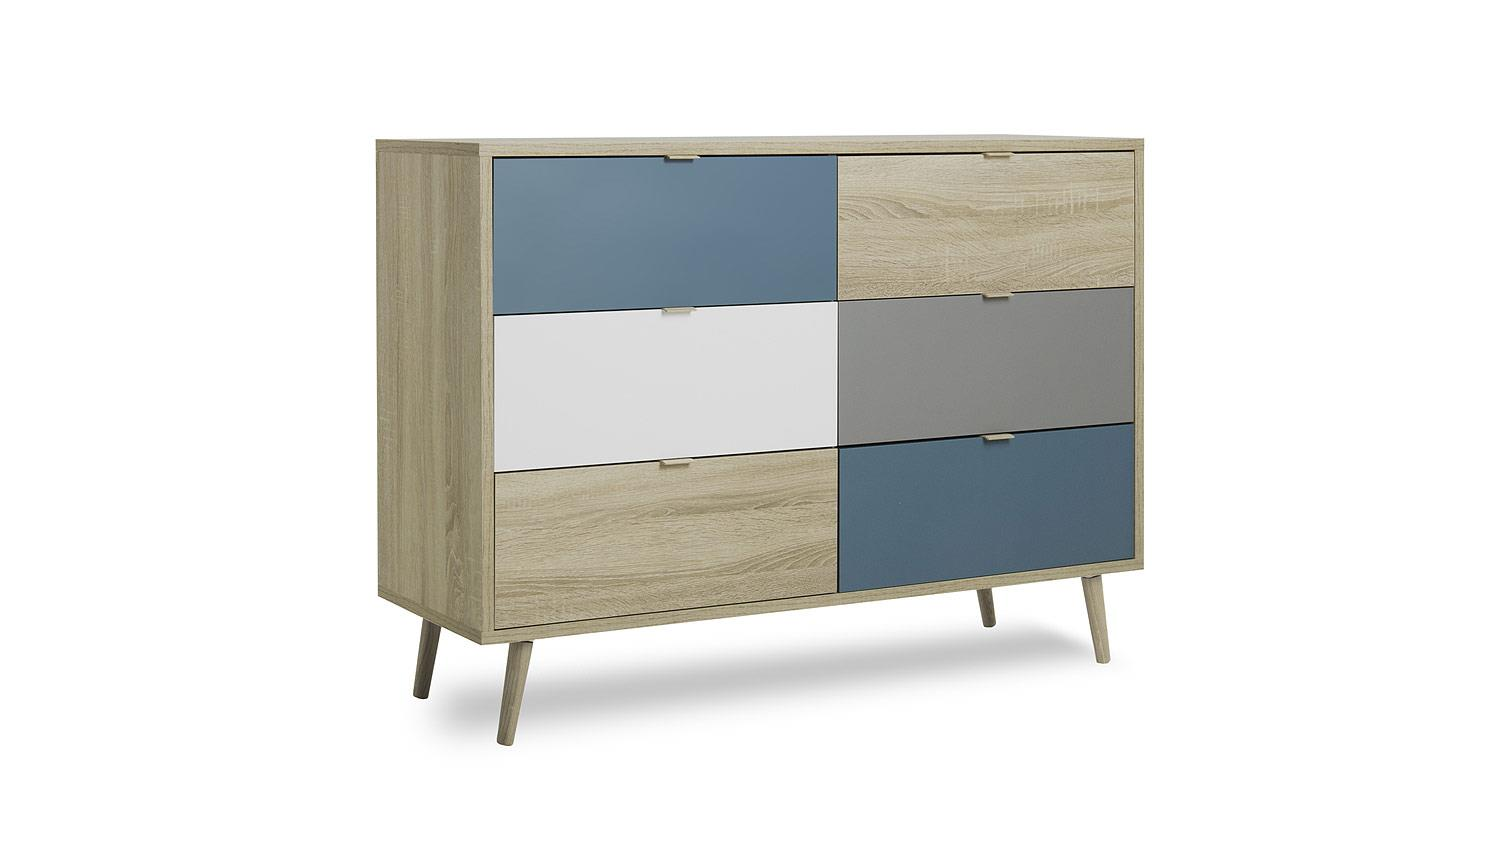 kommode cuba sideboard anrichte sonoma eiche wei grau petrol 120x85. Black Bedroom Furniture Sets. Home Design Ideas